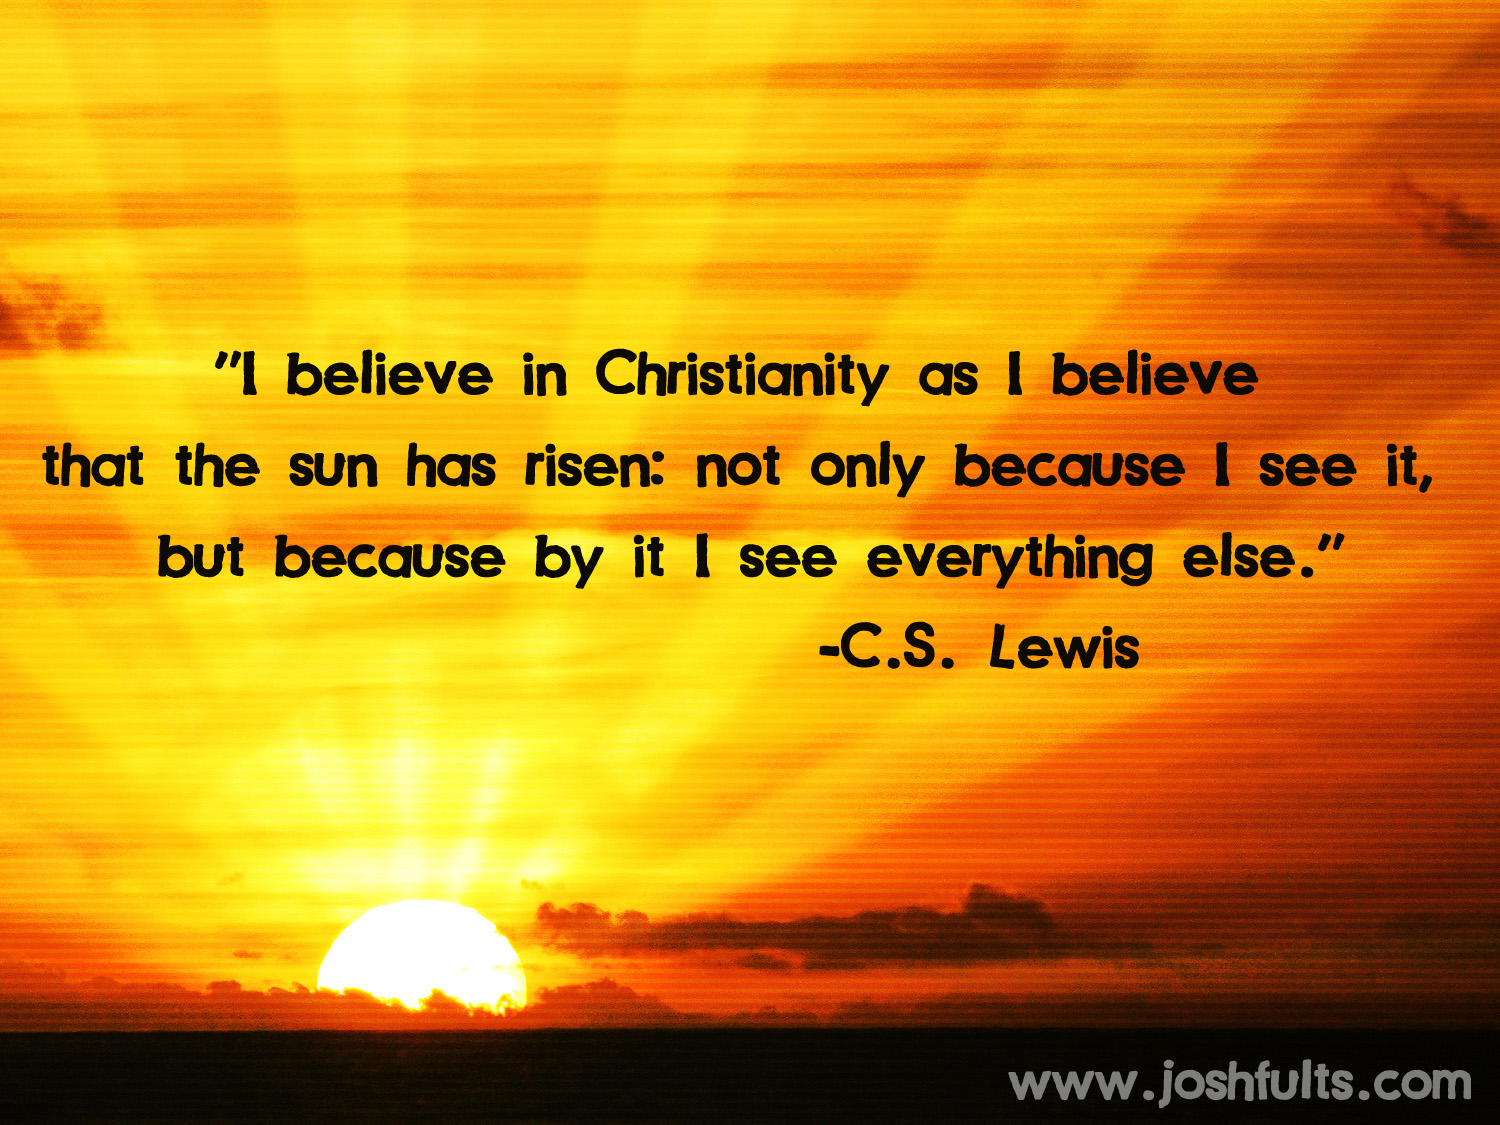 Christian Quotes And Saying: Christian Quotes And Sayings Wallpapers. QuotesGram